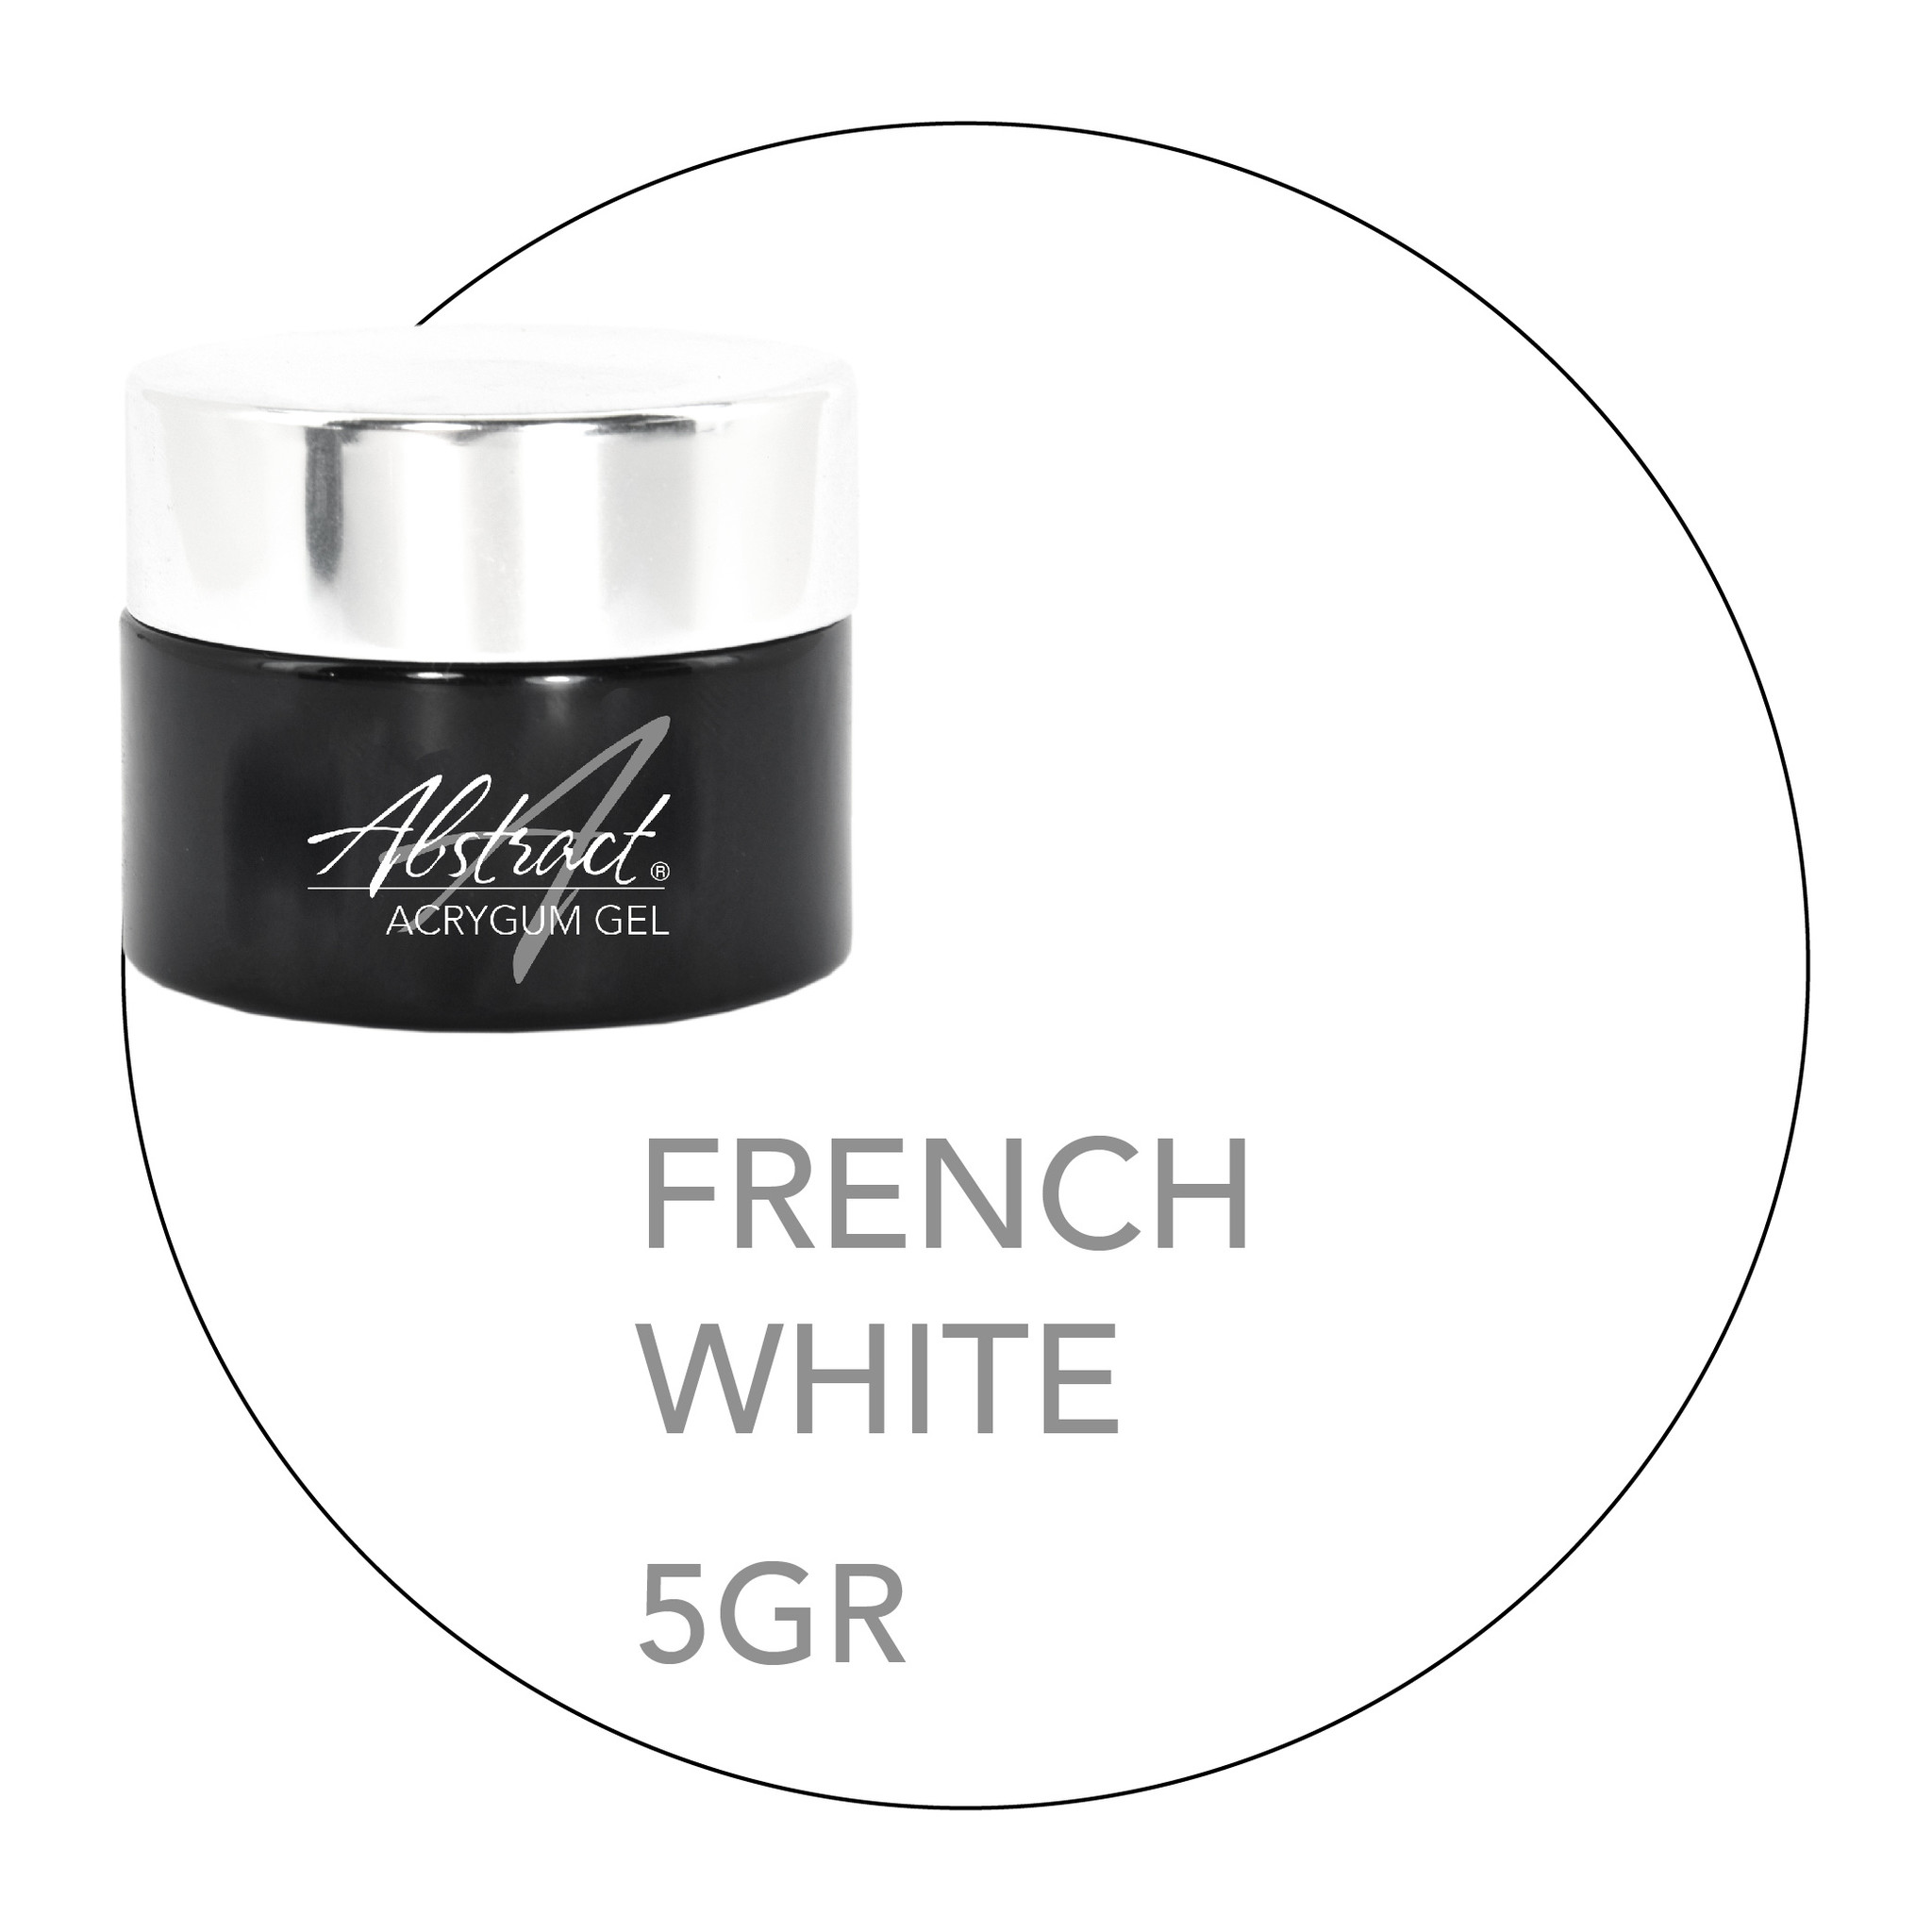 Abstract® AcryGum FRENCH WHITE 5 gr